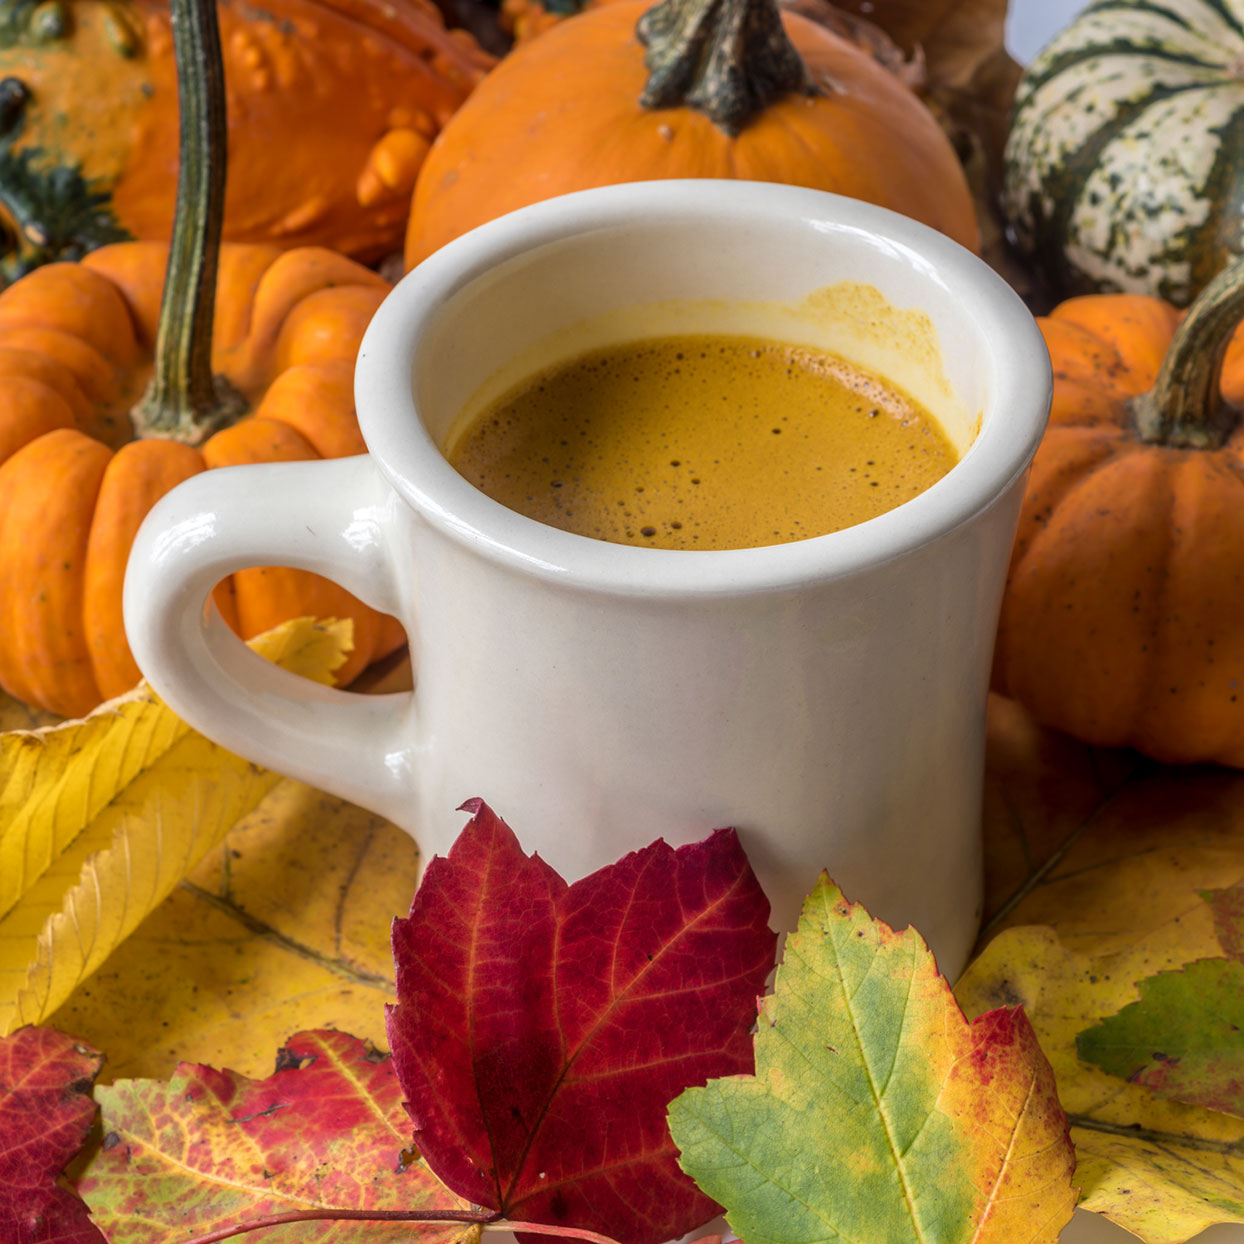 Pumpkin Spice Is Overrated and We Need to Talk About It